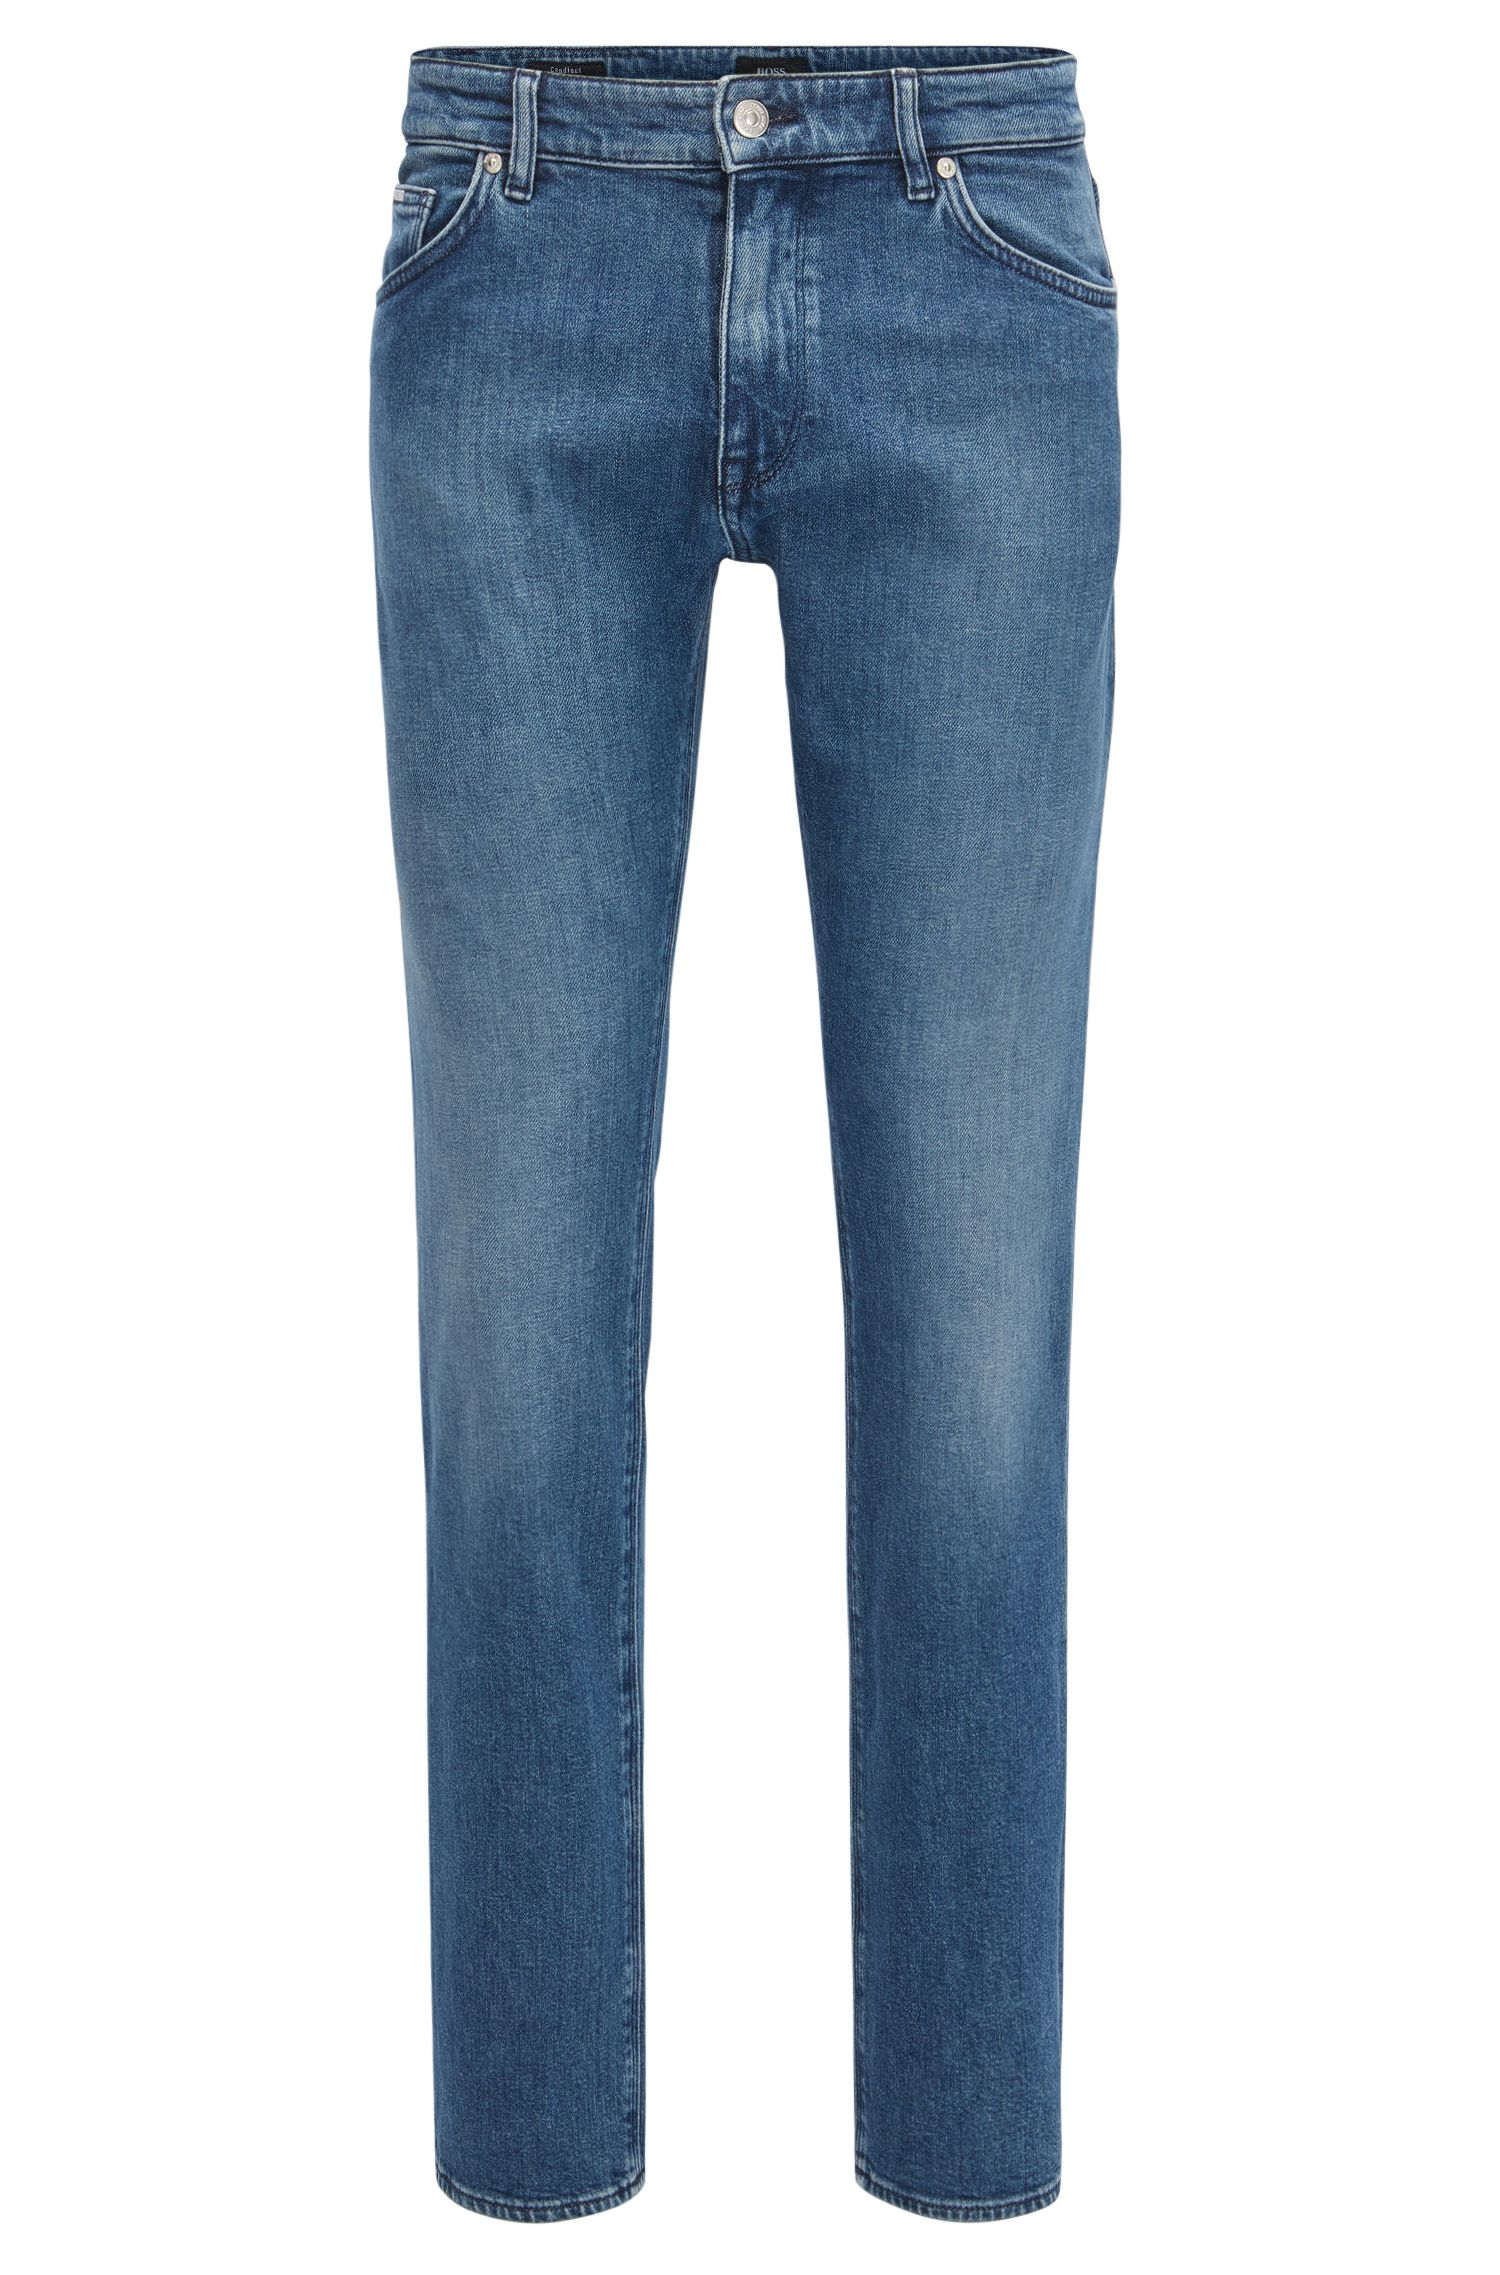 Jean Regular Fit bleu foncé en denim stretch